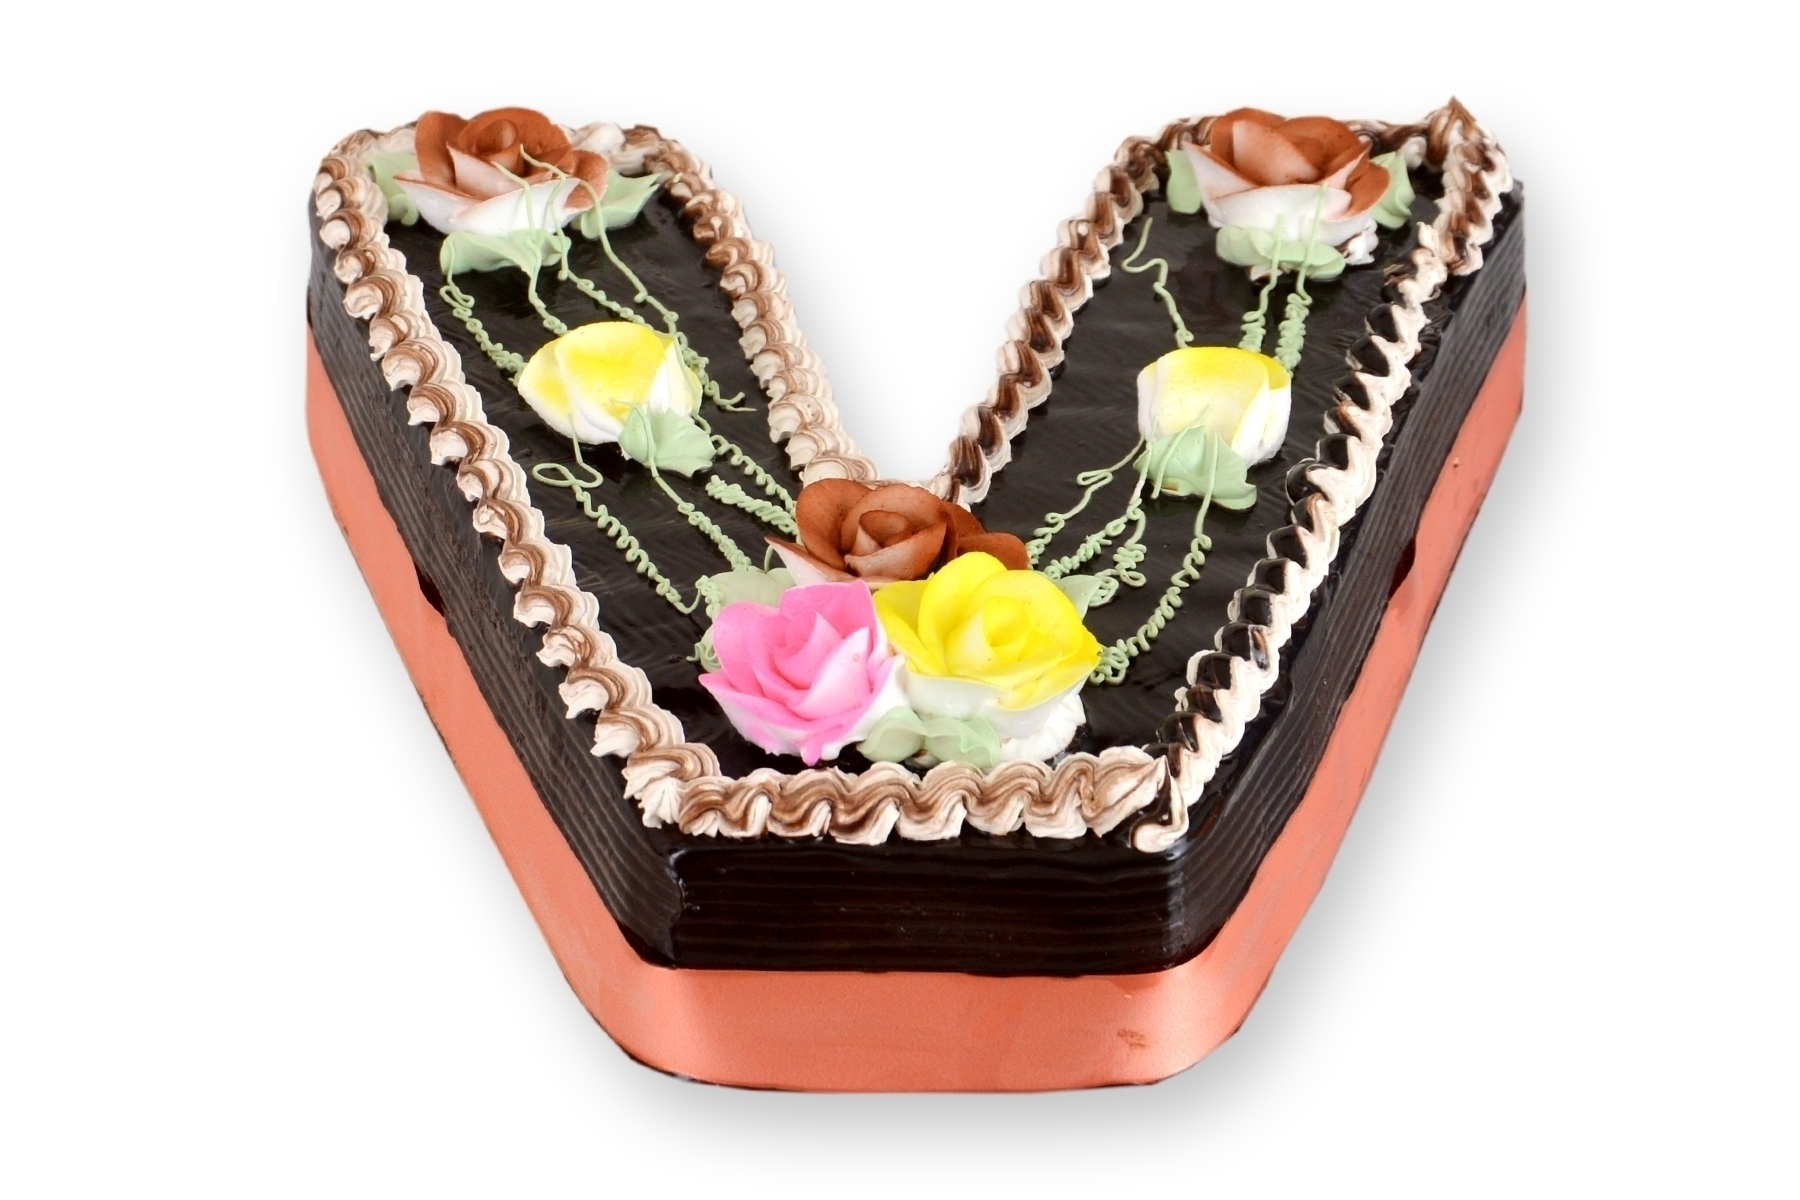 V Alphabet Shaped Cake (Any Flavour) in Pune Designs, Images, Price